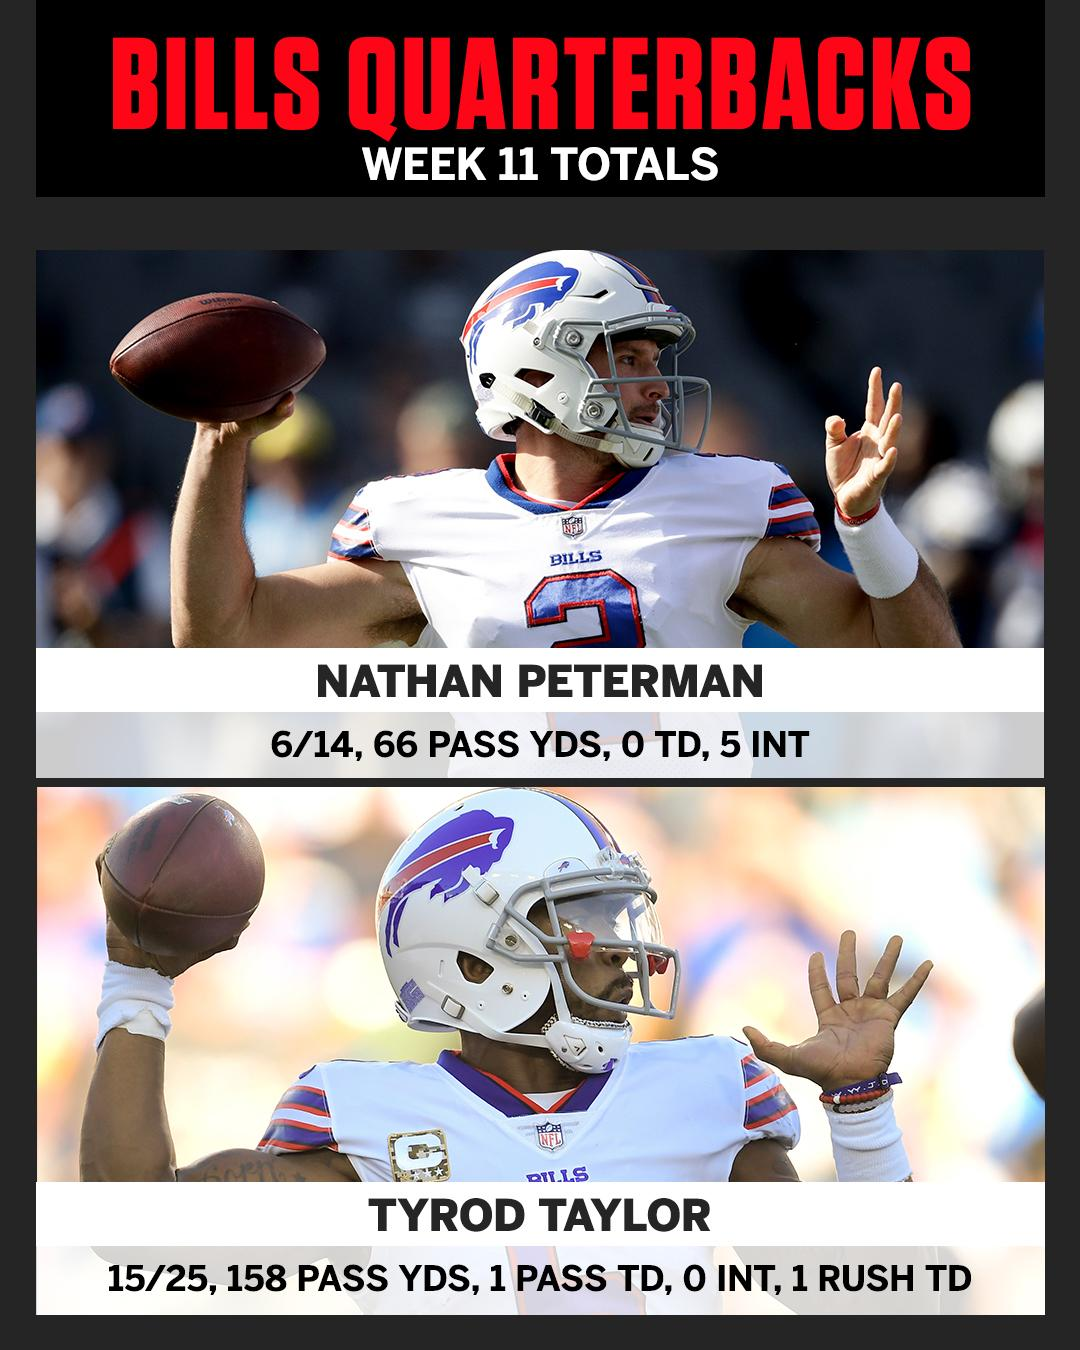 Nathan Peterman and Tyrod Taylor's final stat lines ⤵️ https://t.co/LRMUbWPmtx